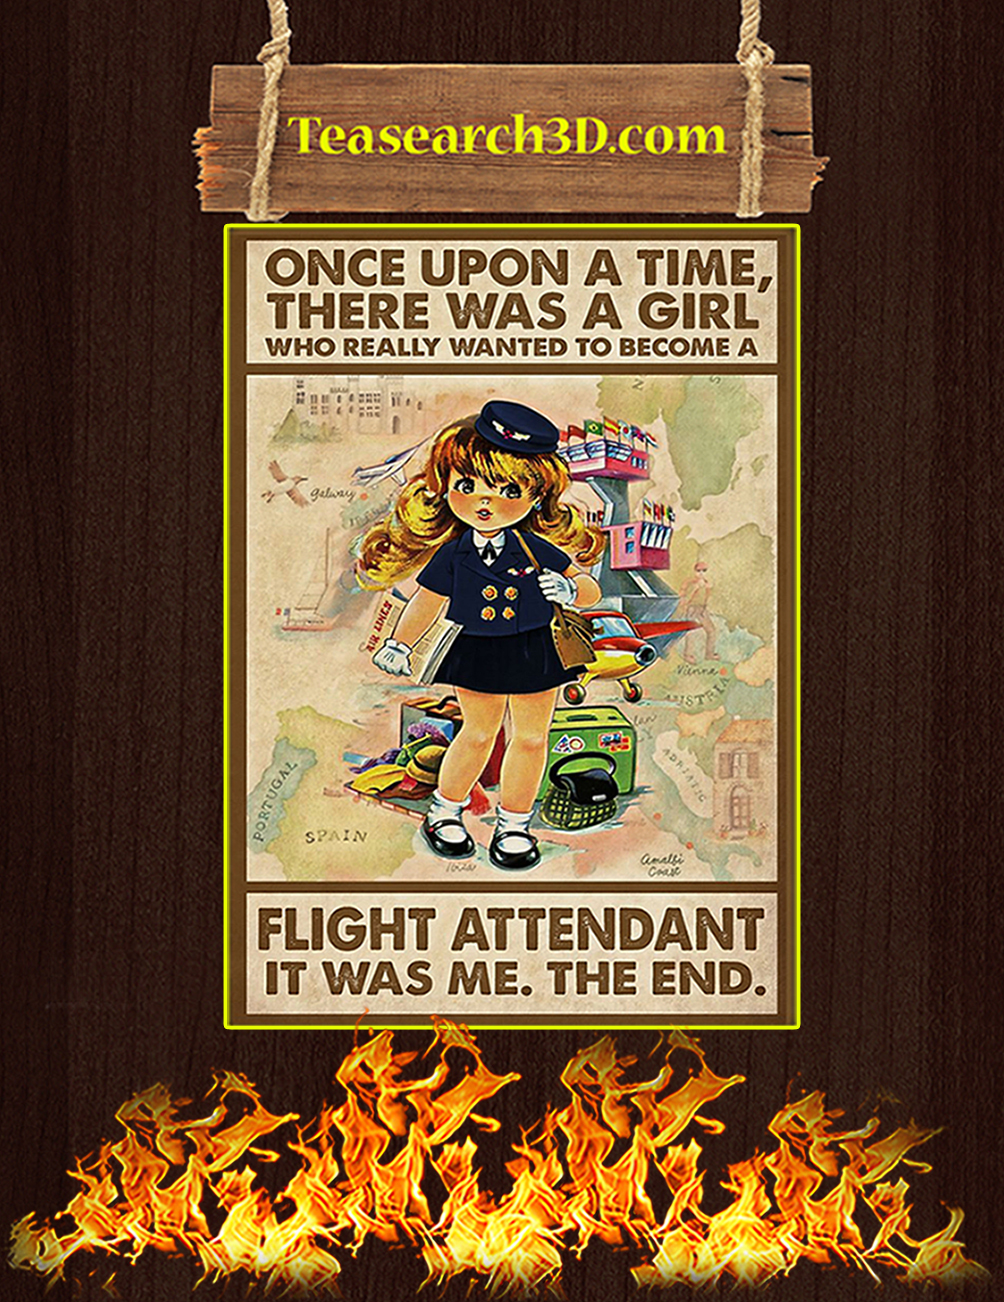 Once upon a time there was a girl who really wanted to become a flight attendant poster 6